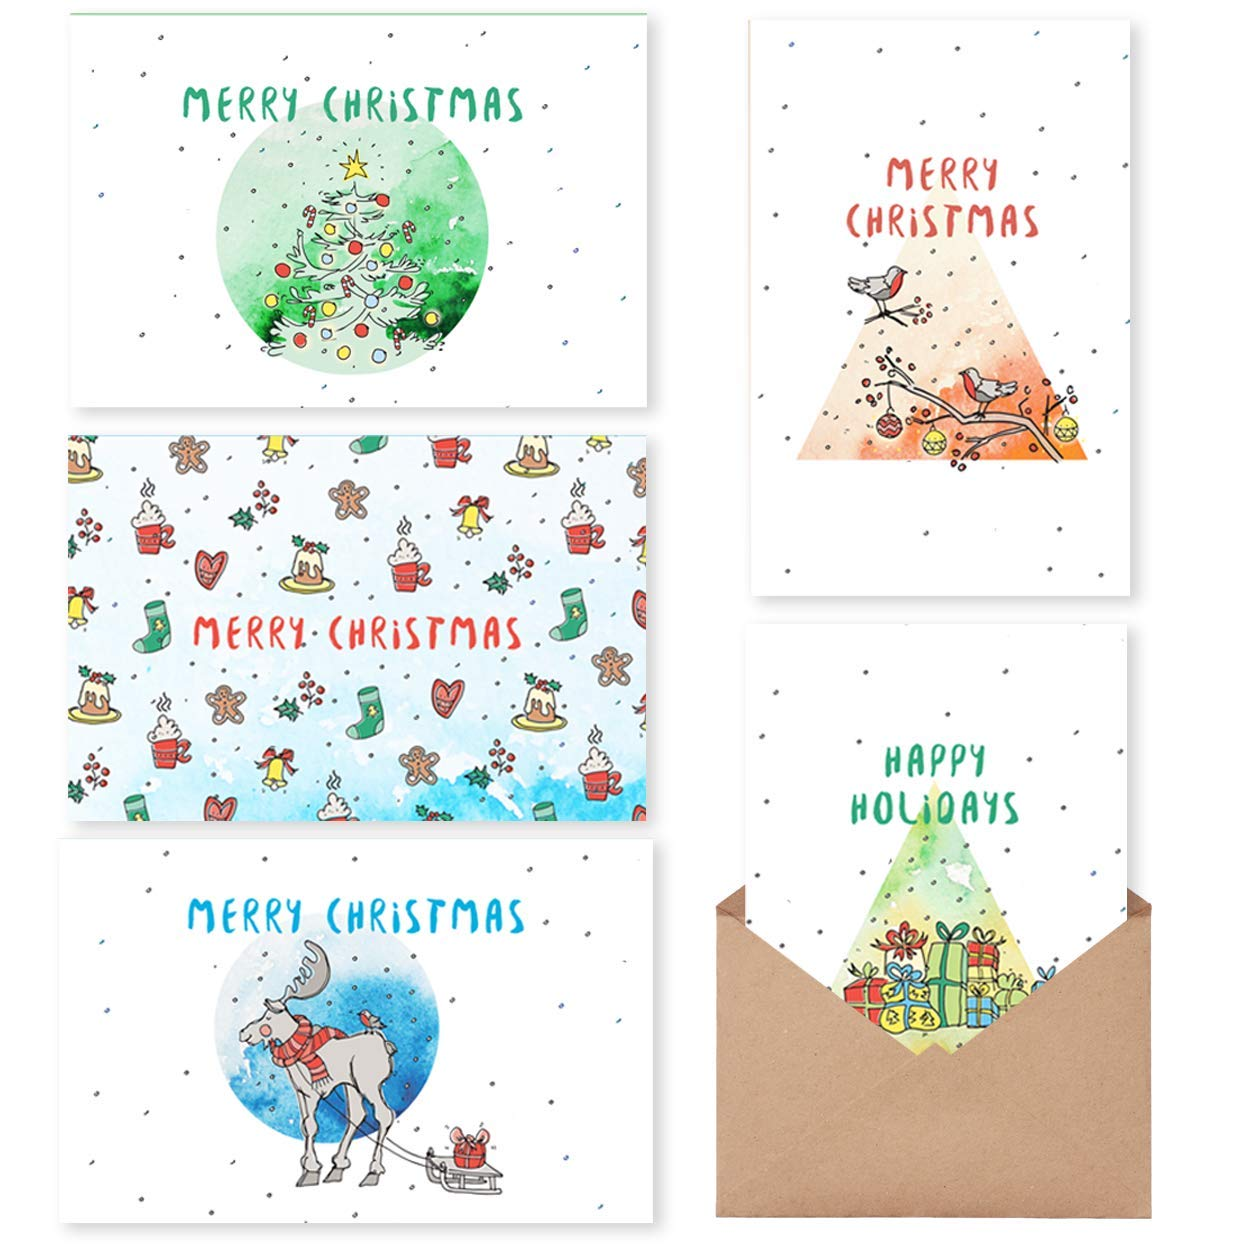 Amazon Com Mpfy Holiday Cards Christmas Cards Pack Of 30 With Envelope Message Inside 6 Unique Design Christmas Cards Boxed Christmas Card Holiday Cards Bulk Greeting Cards Happy Holidays Cards Xmas Office Products